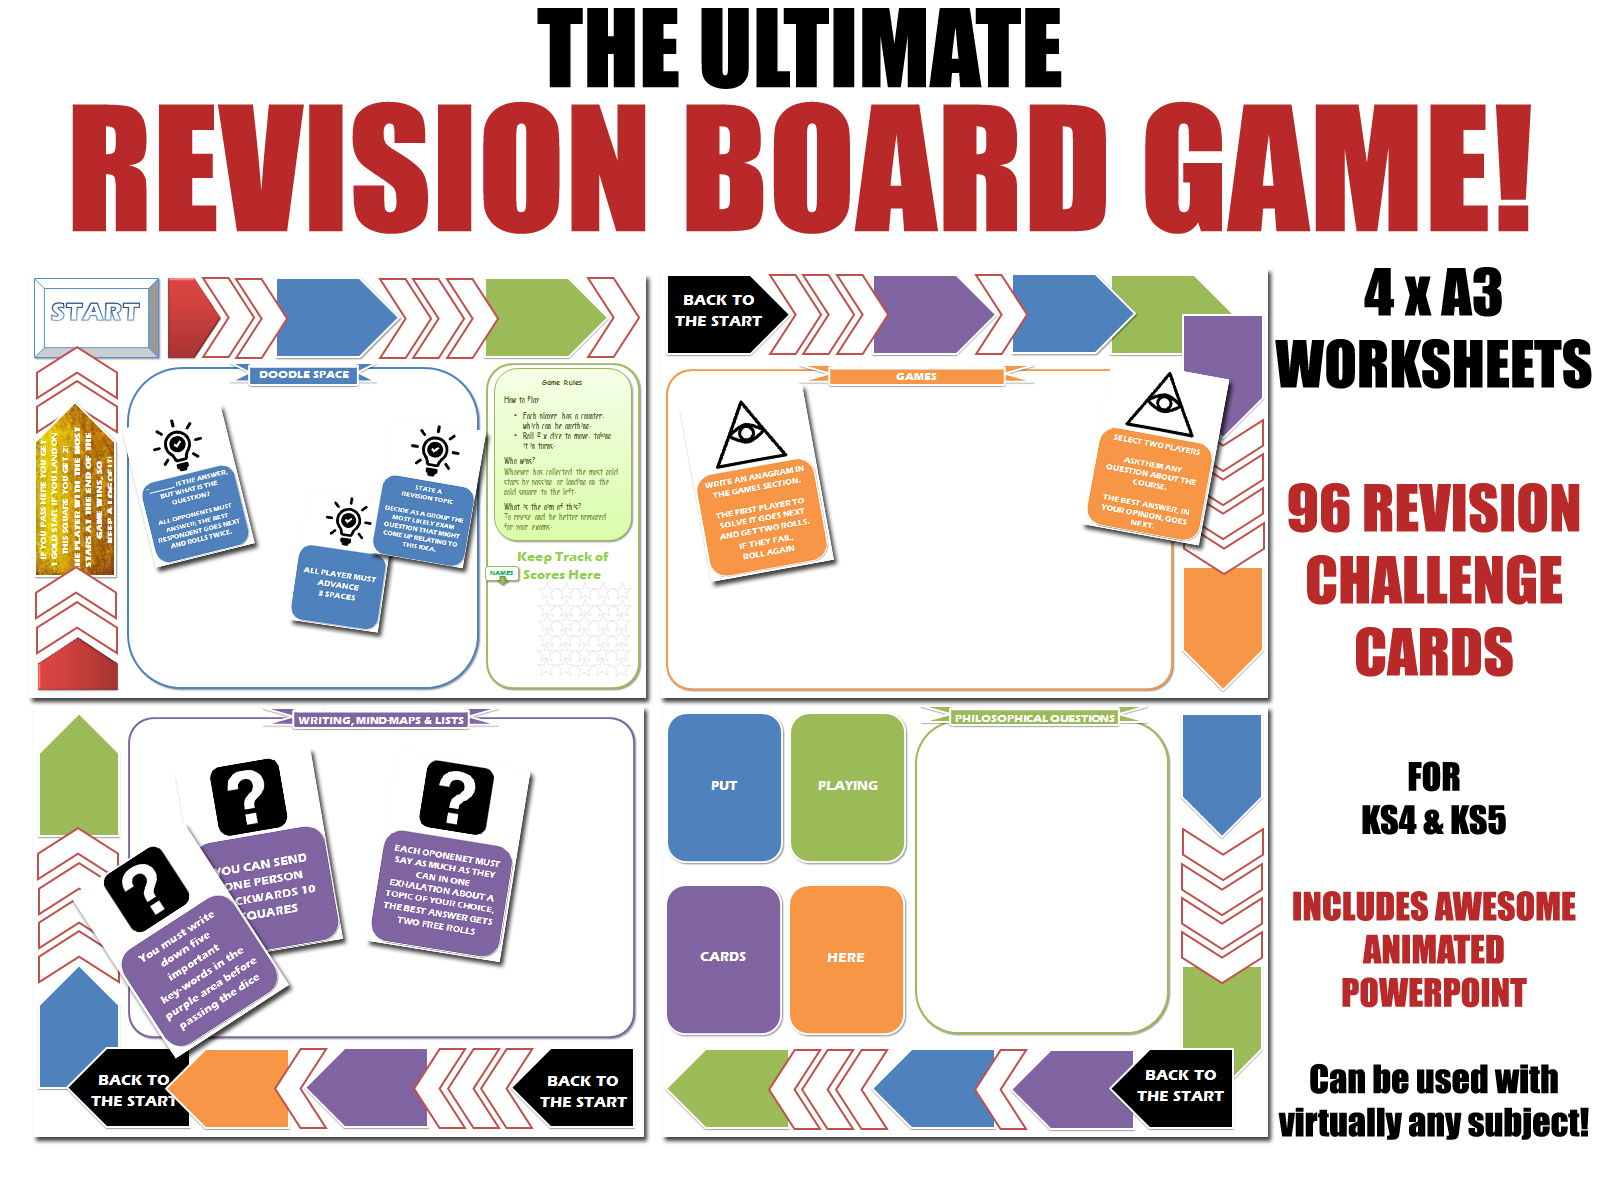 PSHE - REVISION BOARD GAME (GCSE, AS, A2, KS4, KS5)